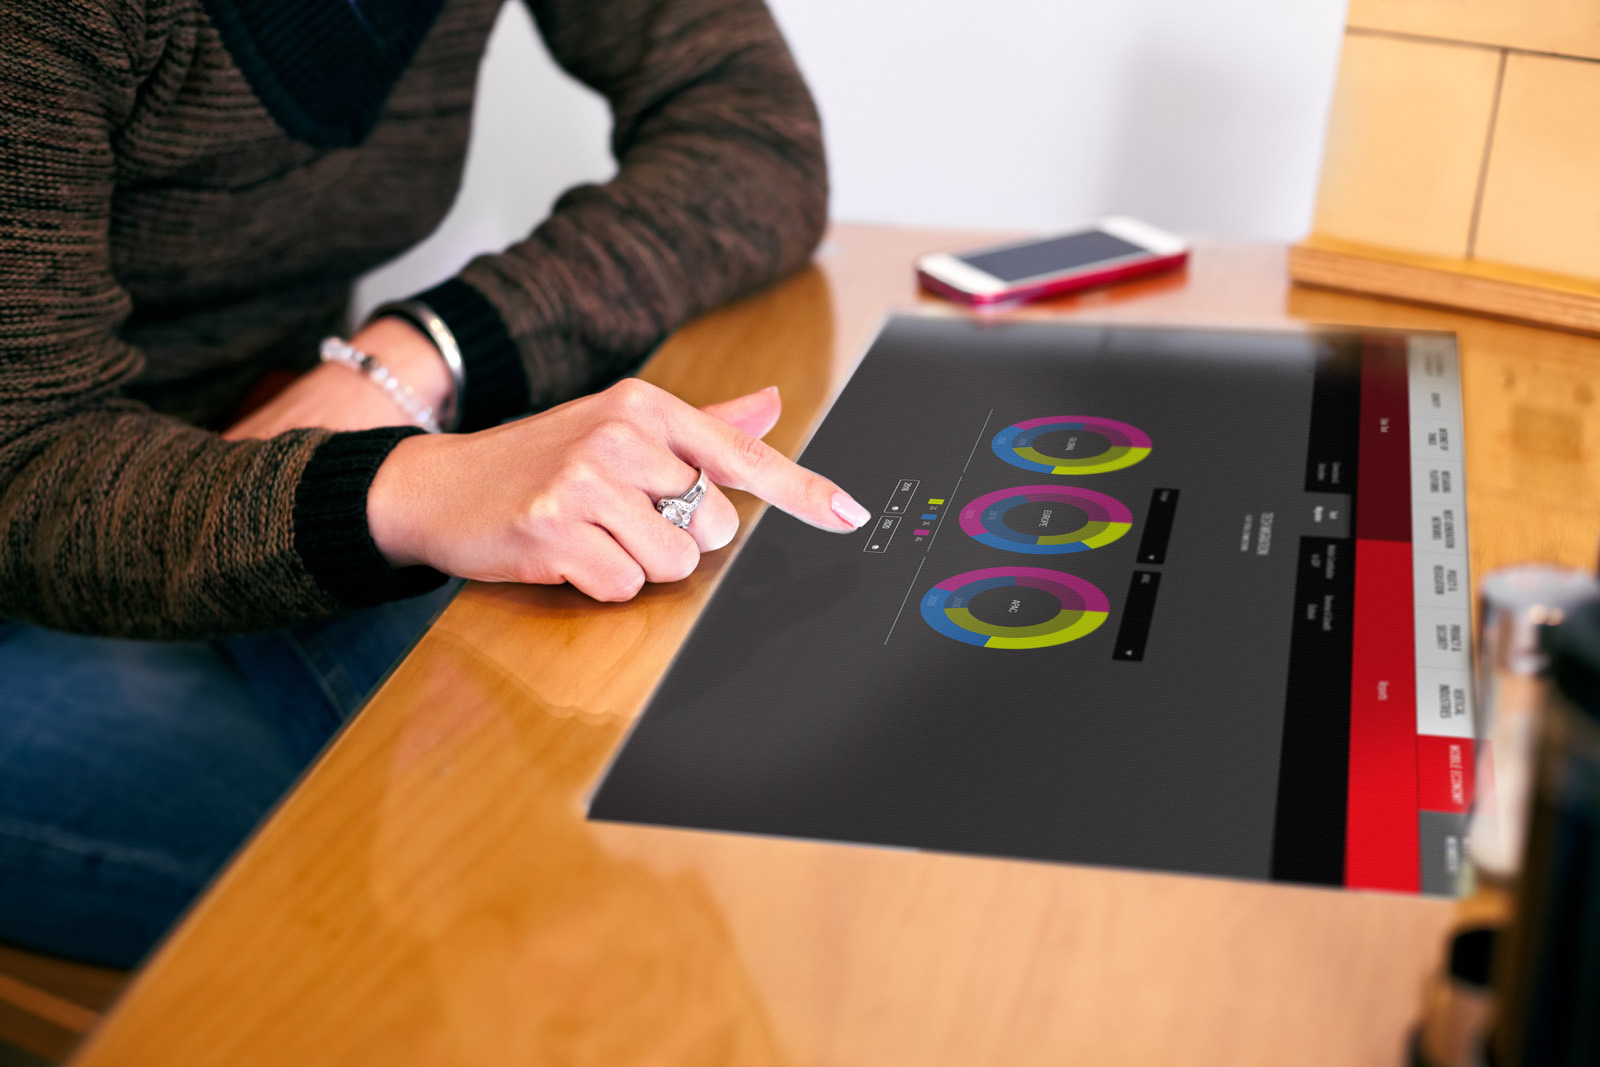 person wearing diamond ring interacting with interactive touchscreen presentation displayed on large monitor on wooden table